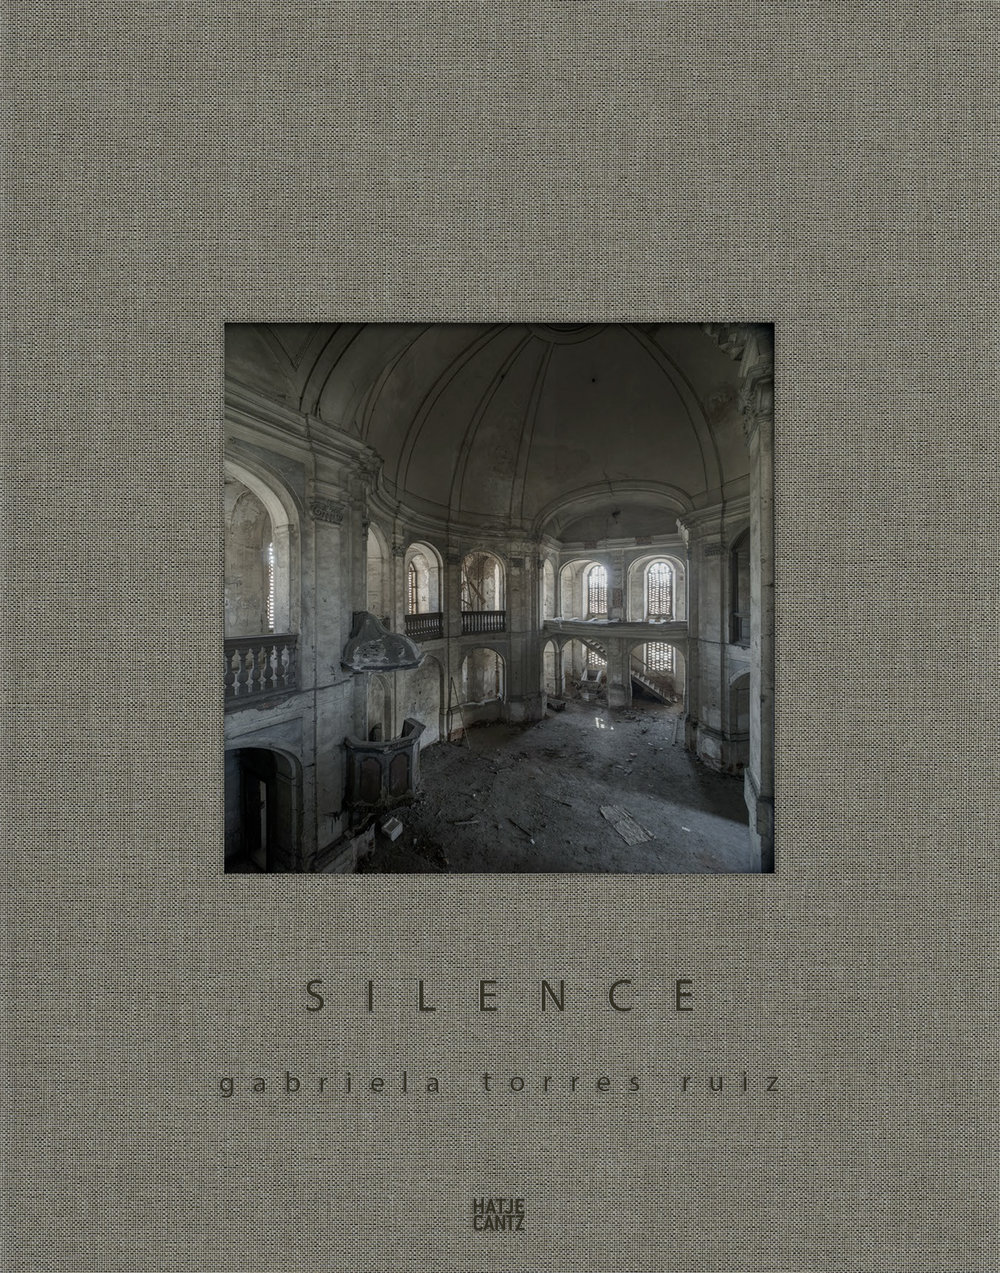 Silence,Gabriela Torres Ruiz - Text von Timothy PersonsDeutsch, Englisch, Spanisch112 Seiten, 88 Abb., Leinen, 23,00 x 29,00 cmHatje Cantz VerlagISBN 978-3-7757-4318-1If you would like to purchase a signed book, just send me an email. The cost is 40€ plus shipping.gabrielatorresr@online.de